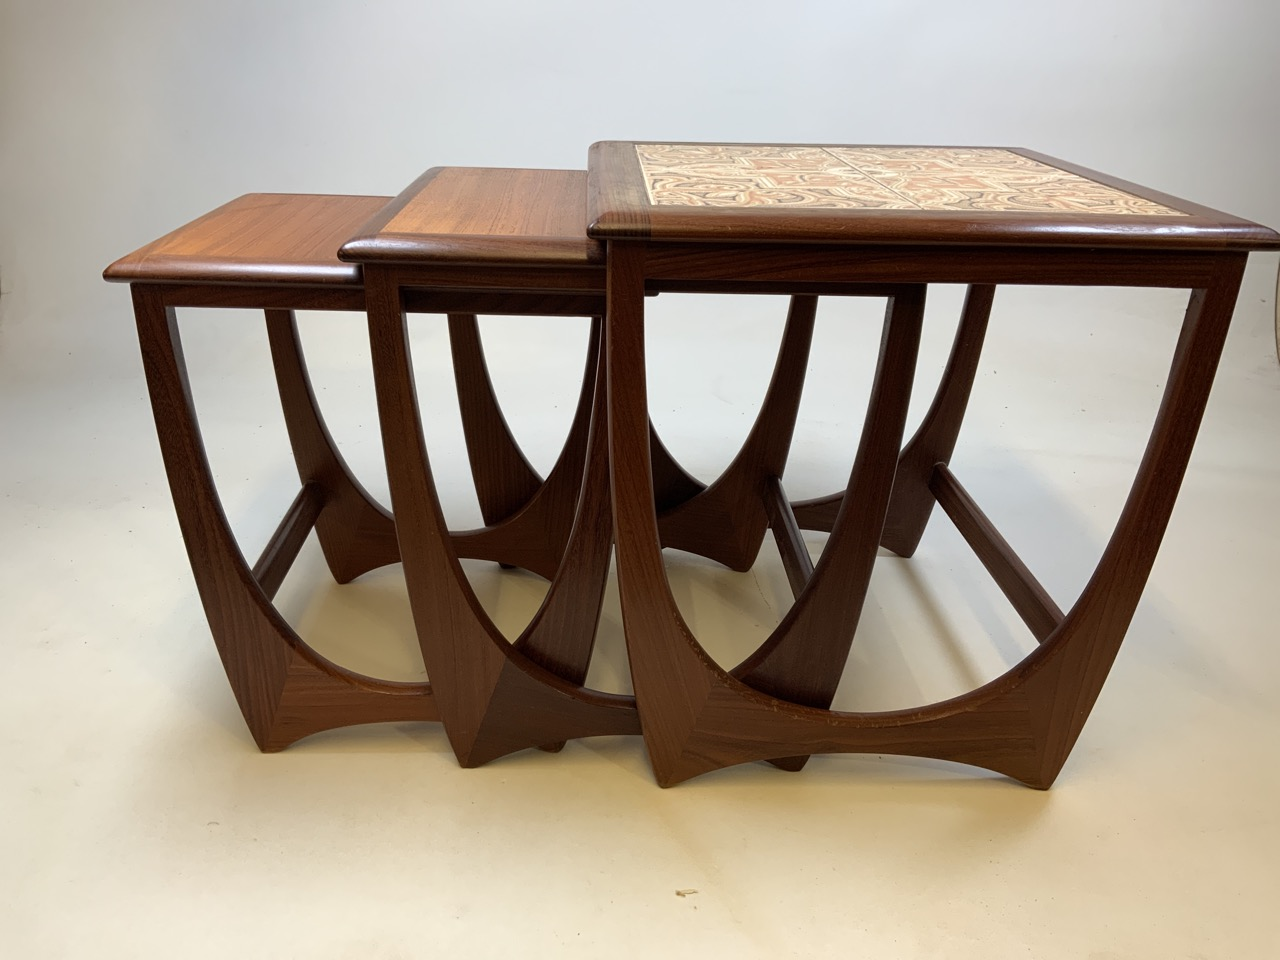 A G Plan mid century nest of three tables with tiled top table. W:50cm x D:50cm x H:51cm - Image 5 of 6